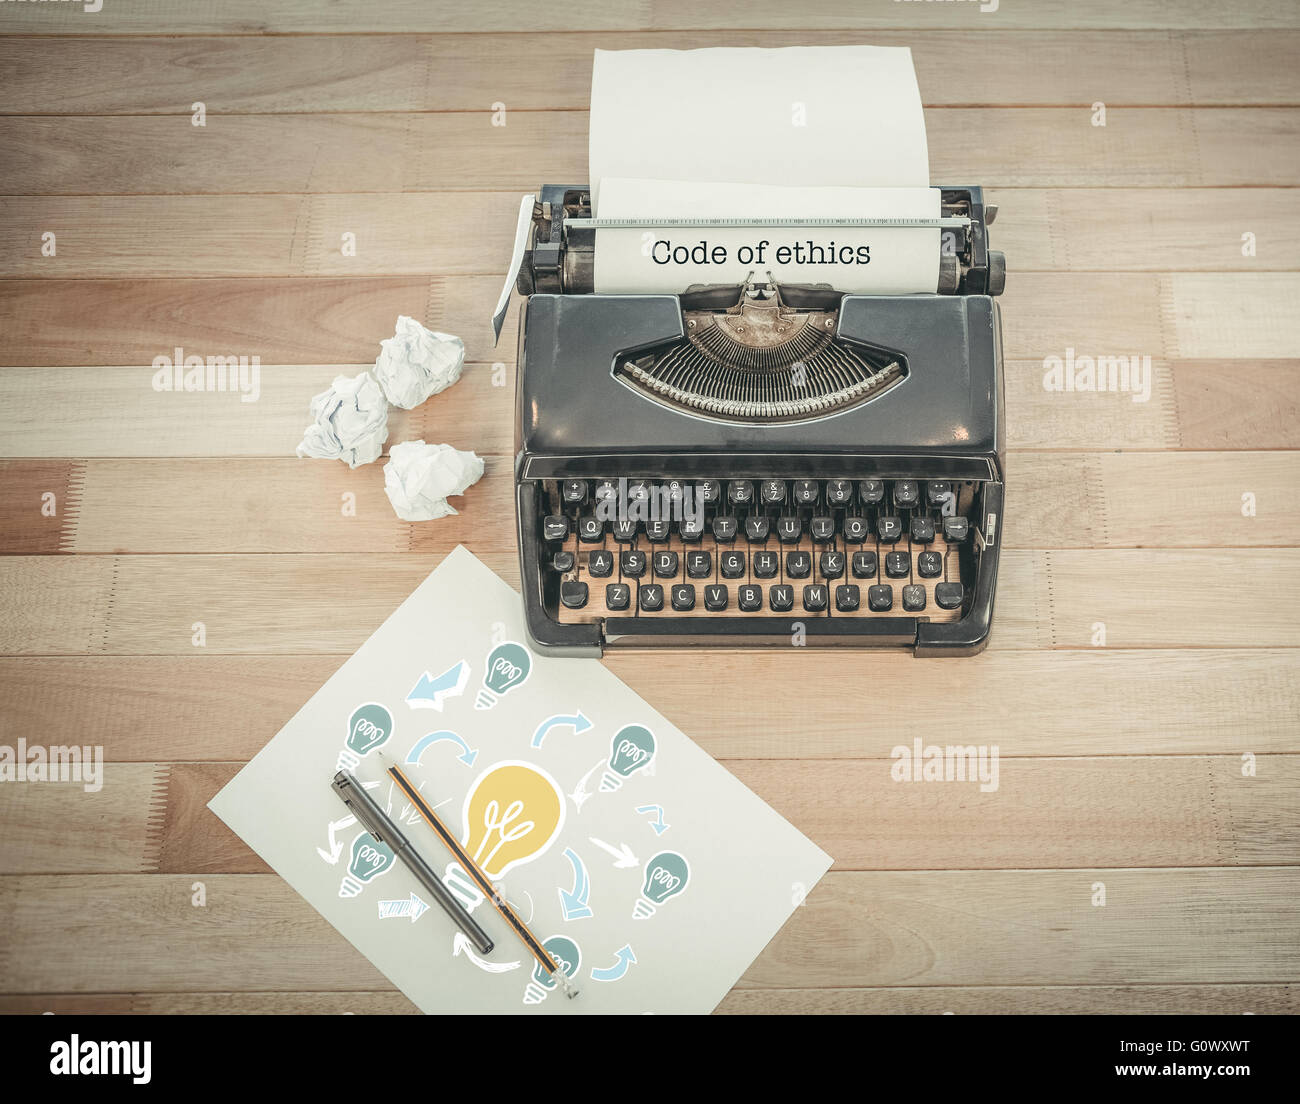 Code of ethics against typewriter and paper on table in office - Stock Image